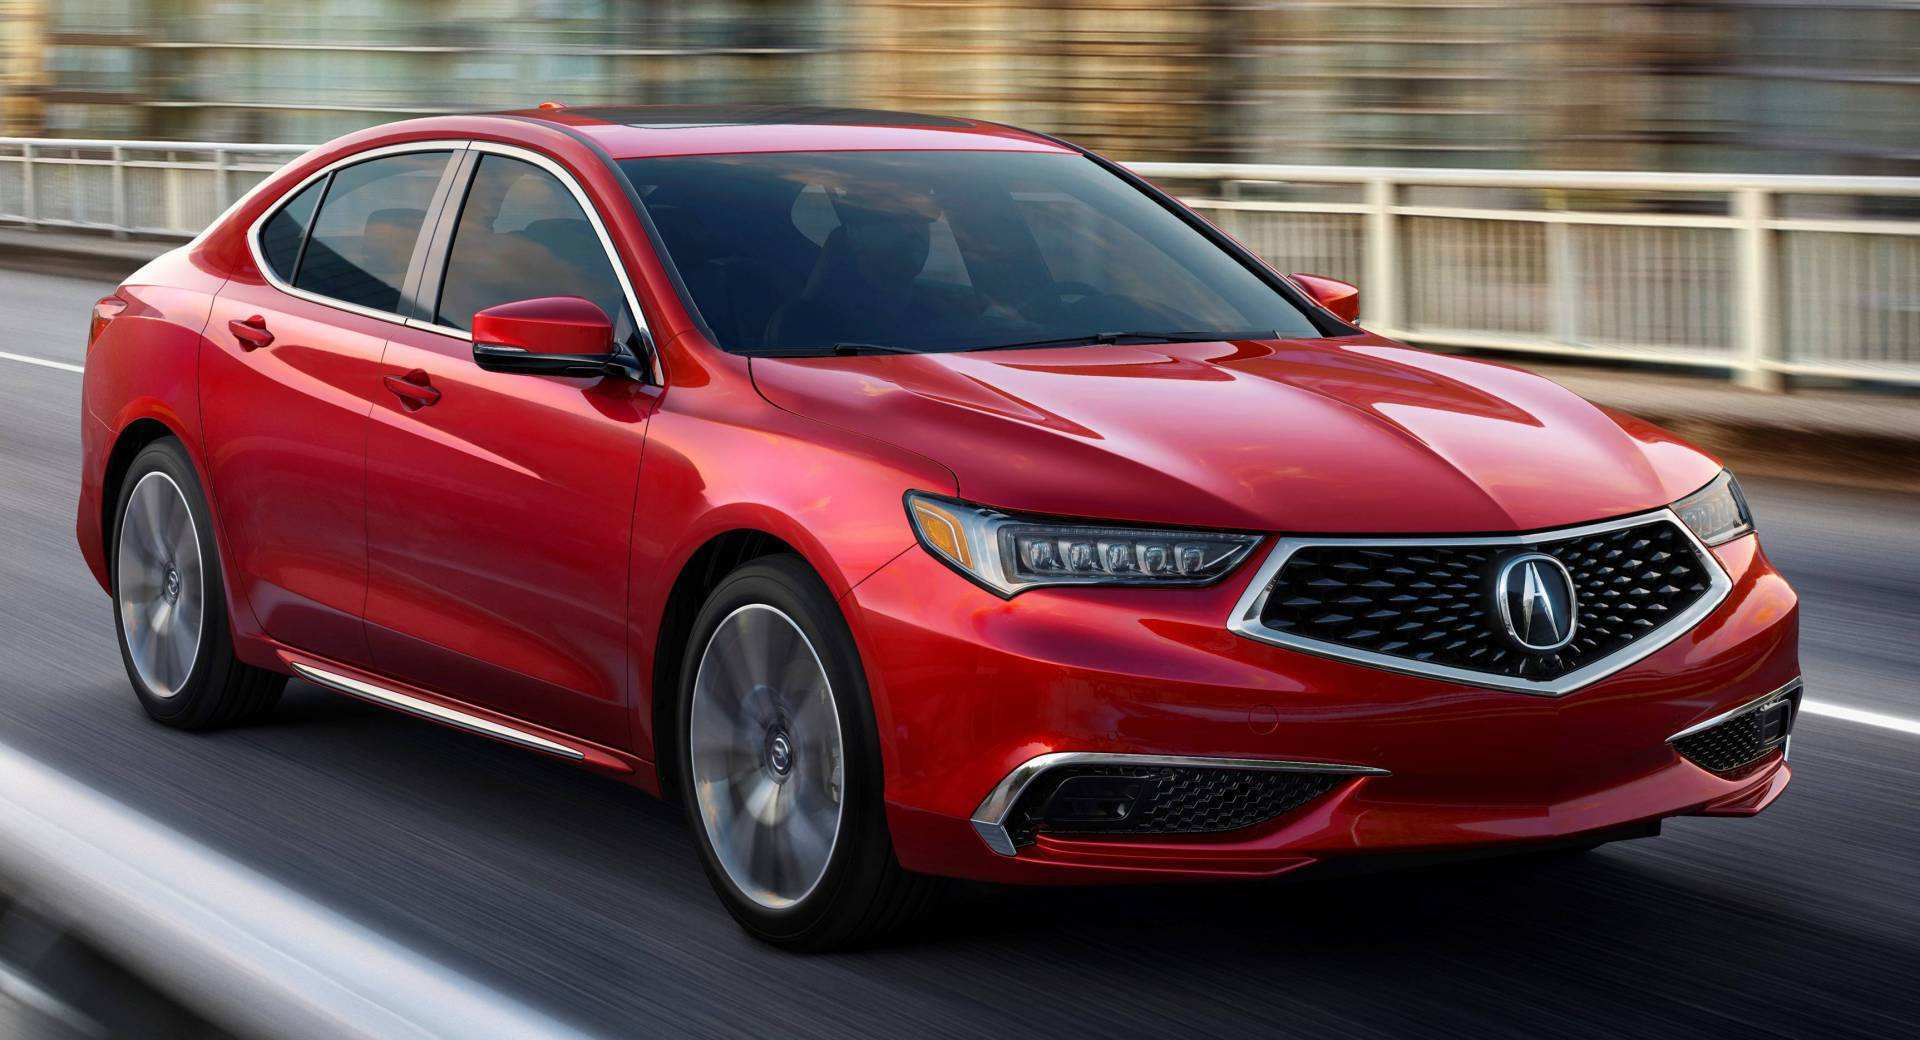 16 Concept of Release Date For 2020 Acura Tlx Images by Release Date For 2020 Acura Tlx